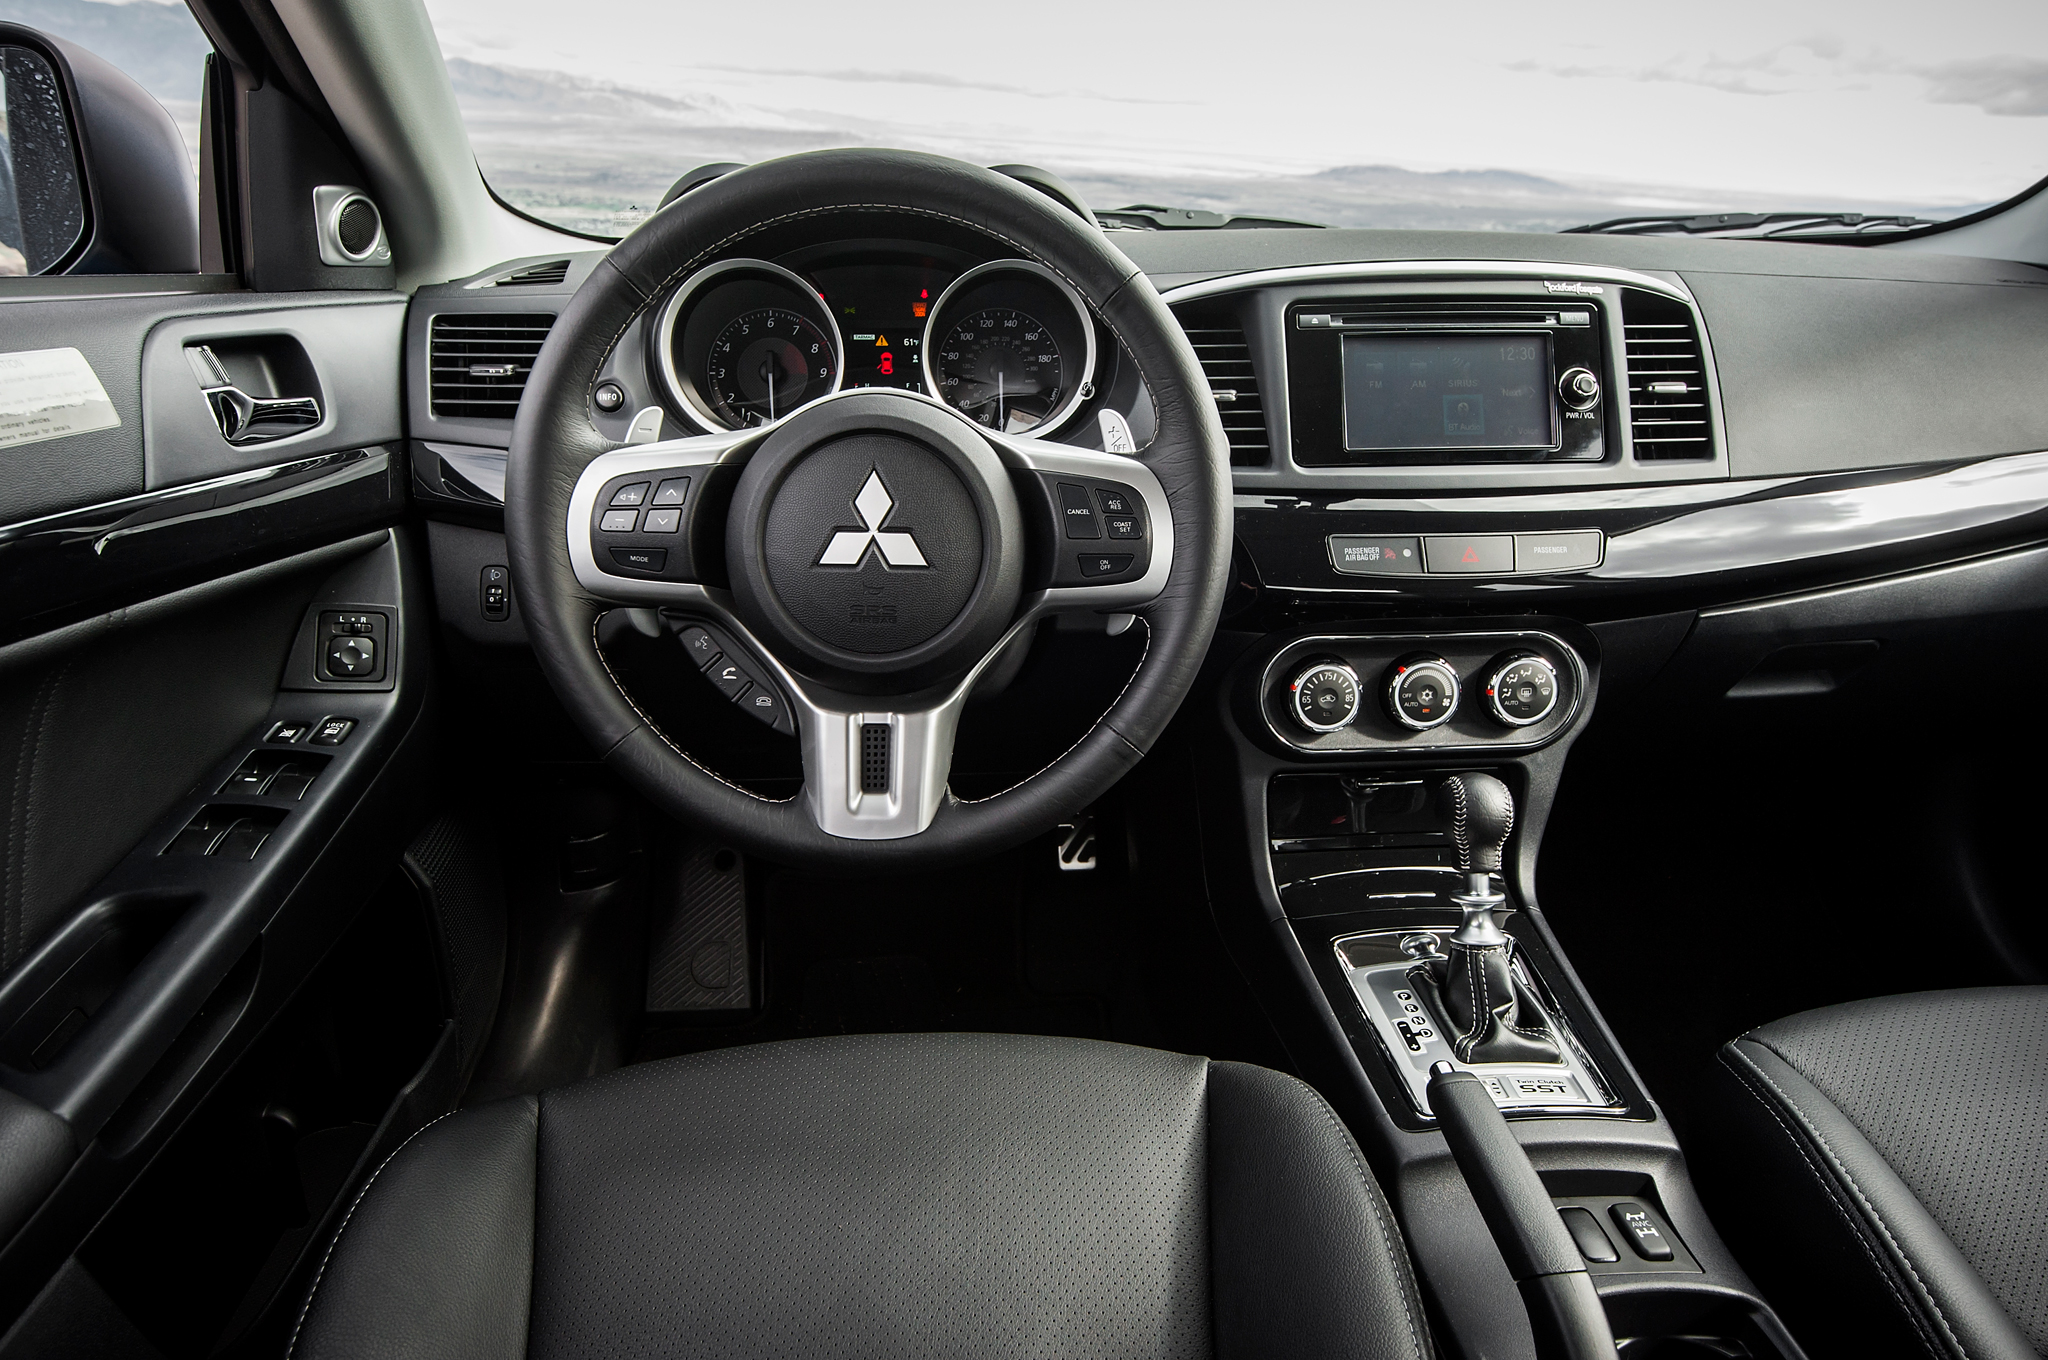 2015-mitsubishi-lancer-evolution-mr-cockpit1